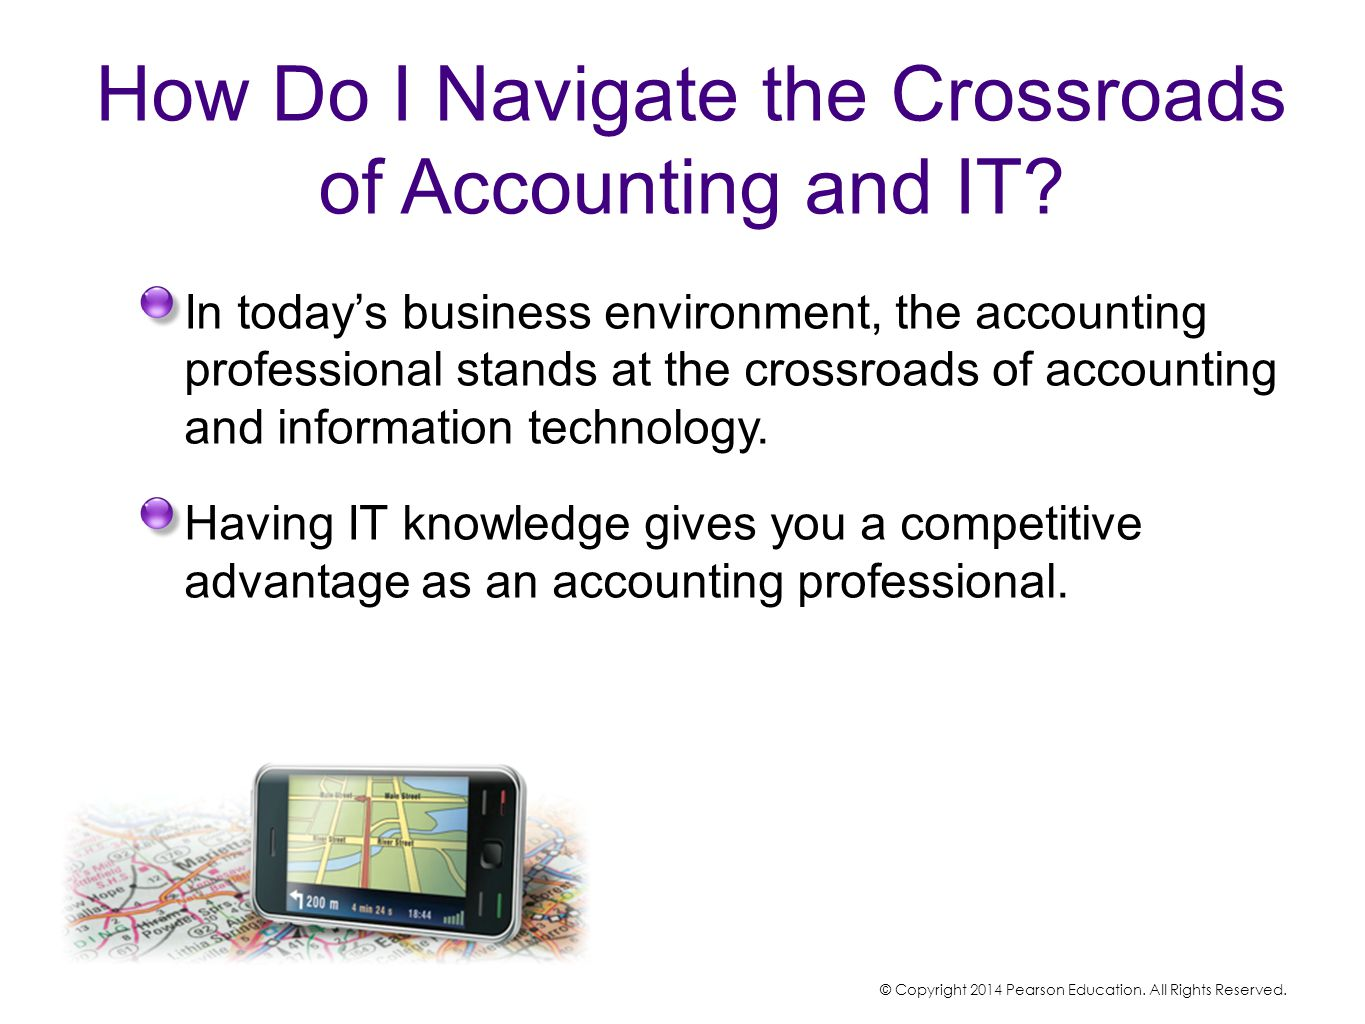 How Do I Navigate the Crossroads of Accounting and IT? In today's business environment, the accounting professional stands at the crossroads of accoun